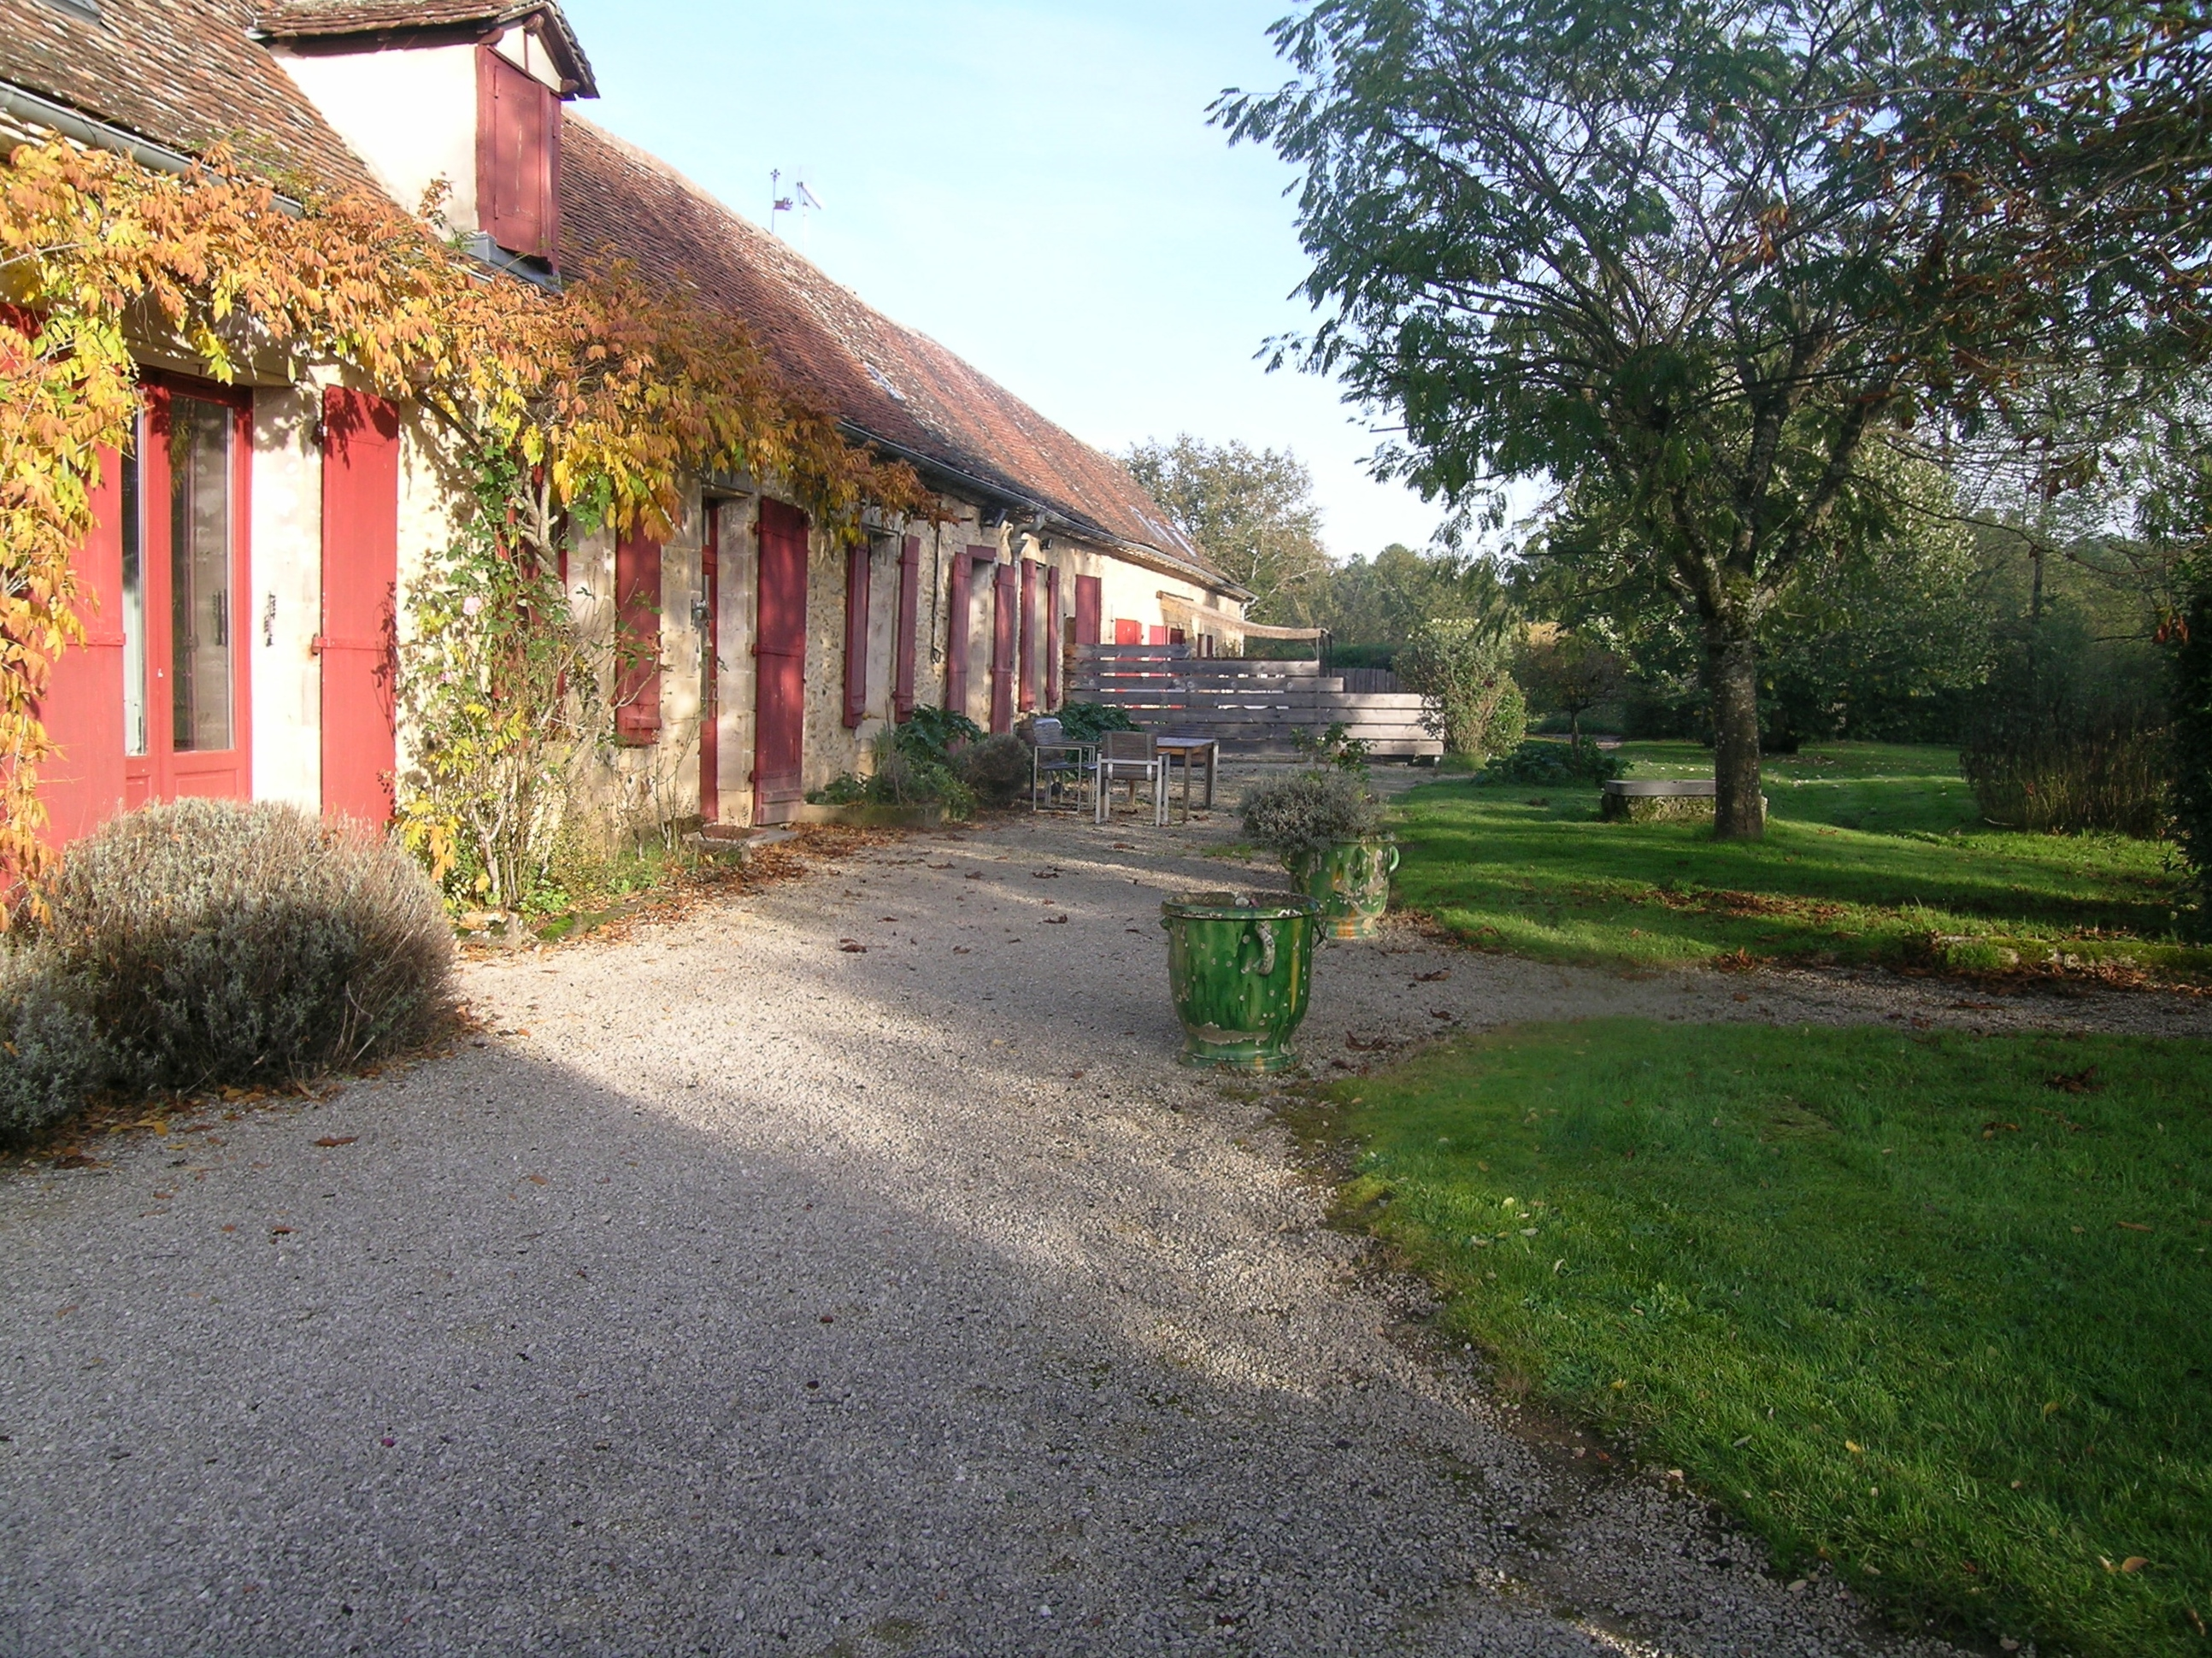 Guest house bergerac dordogne - south view